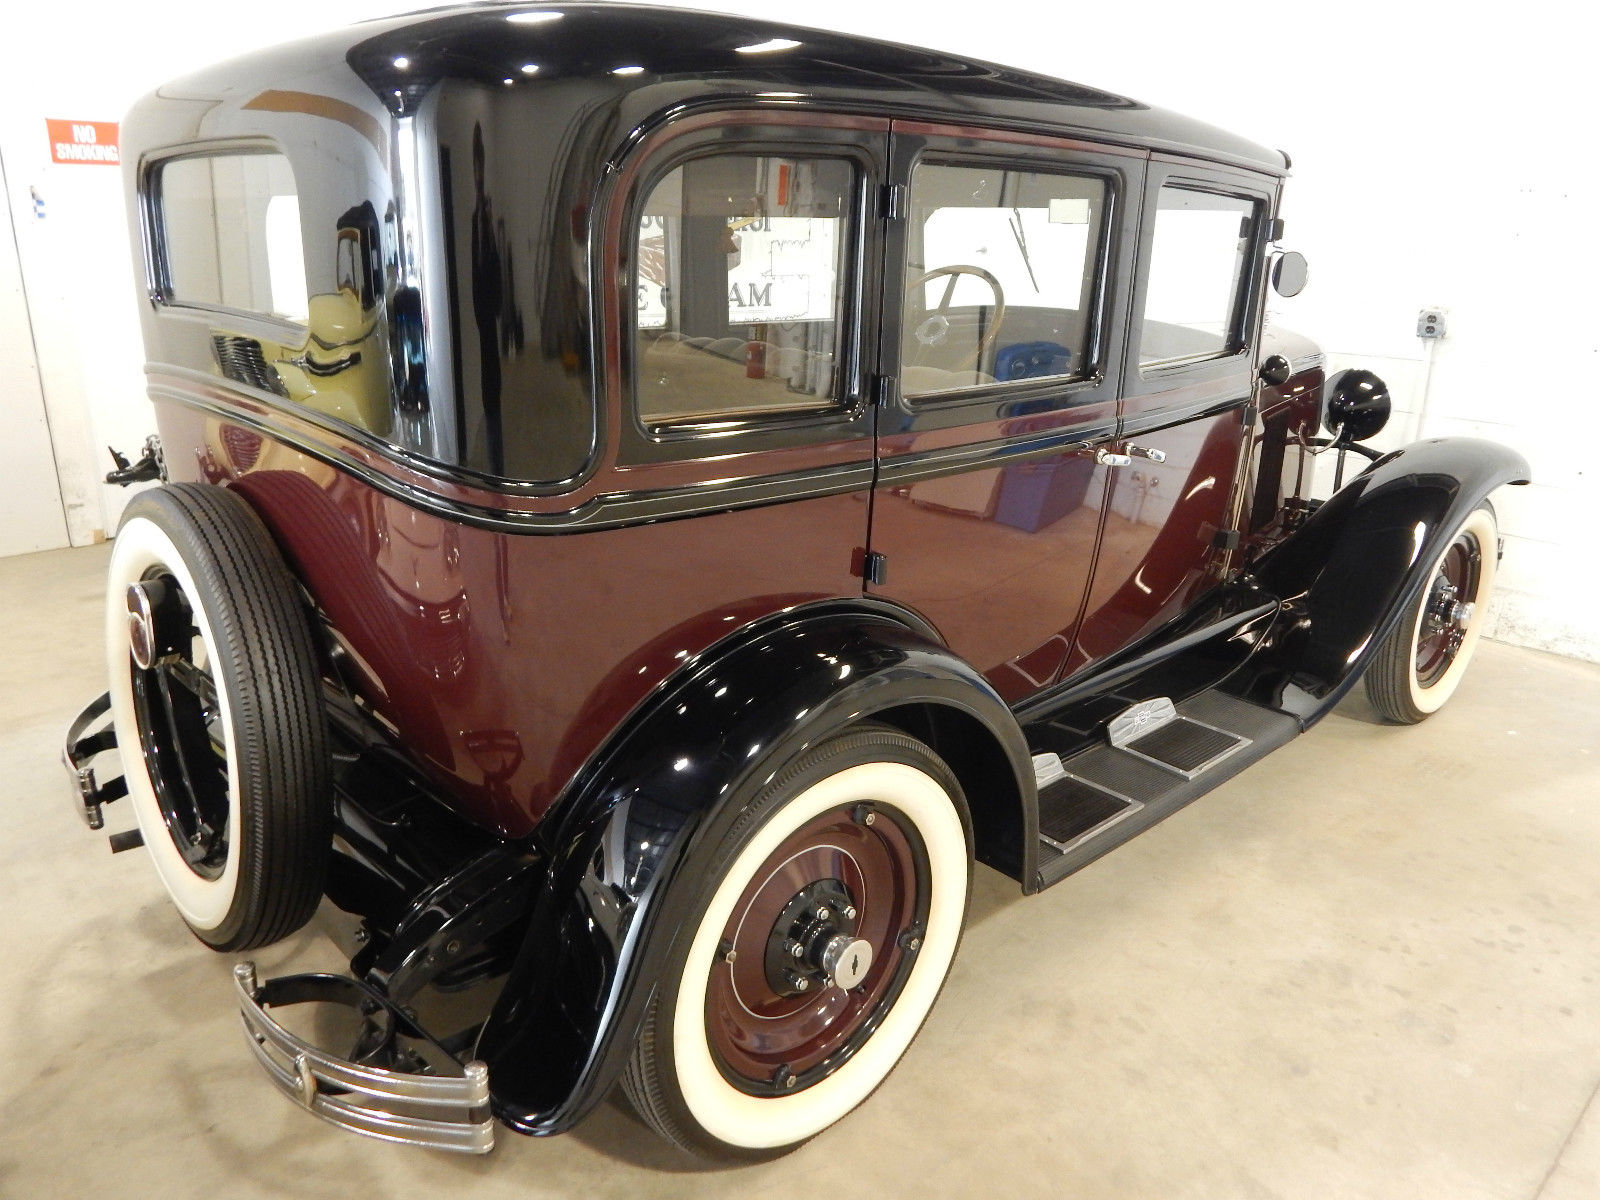 1930 chevrolet ad universal 4 door beautifully restored for sale in wixom michigan united states. Black Bedroom Furniture Sets. Home Design Ideas